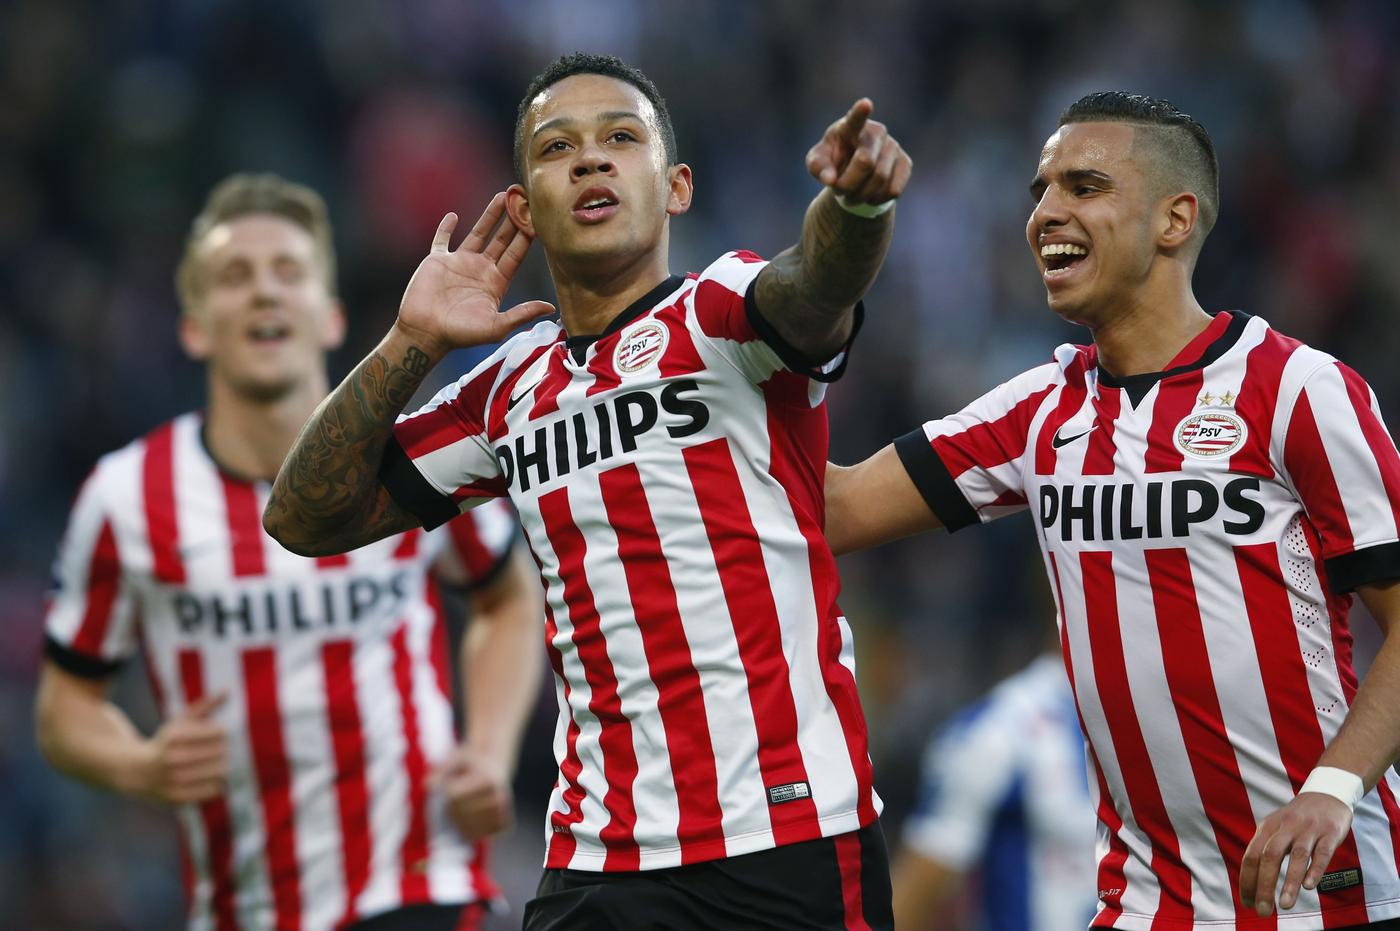 PSV's Memphis Depay shows why he's a transfer target for Manchester United after scoring sublime free-kick